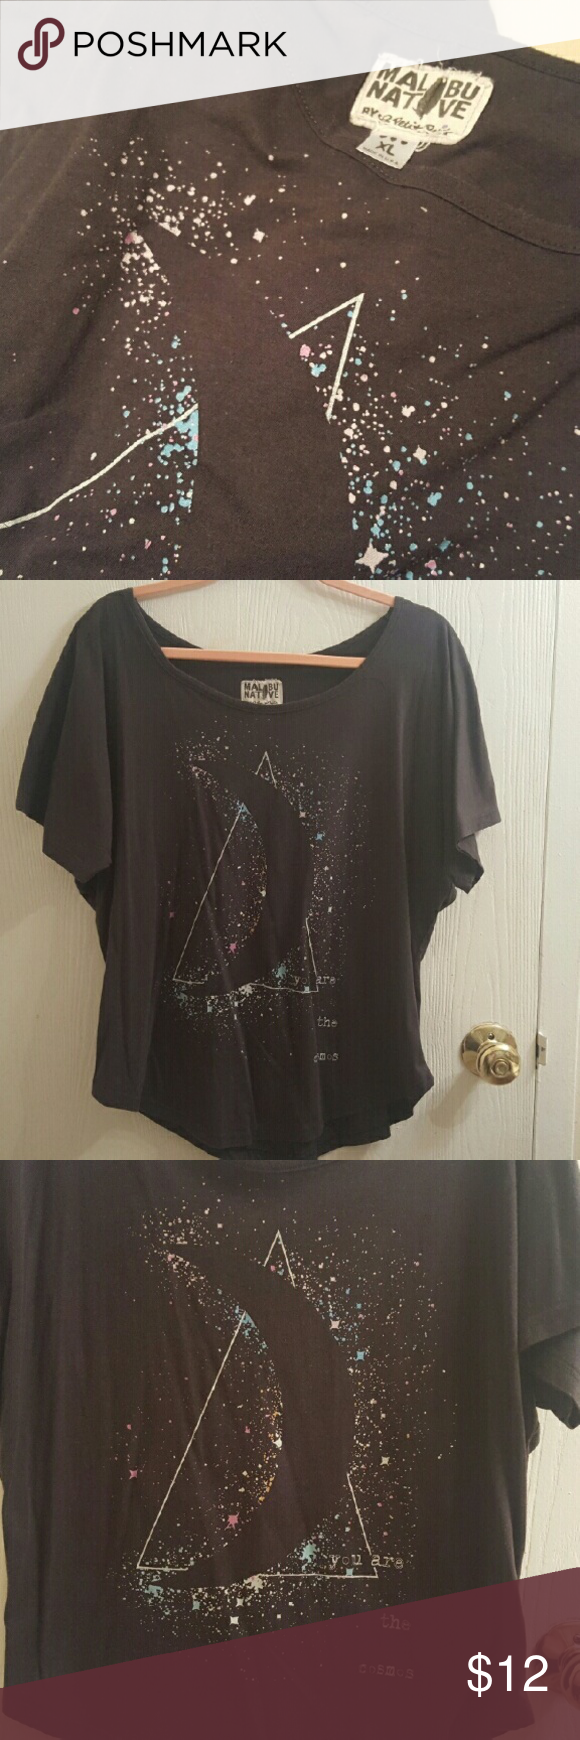 """Dark Grey Malibu Native T-Shirt size XL Dark Grey Malibu Native T-Shirt size XL (extra large). Has a hipster moon print on it and says """"you are the cosmos"""" Lightly worn, no rips holes or stains! Bought at PacSun.  Bundle and save! Ask me about custom bundles! PacSun Tops Tees - Short Sleeve"""